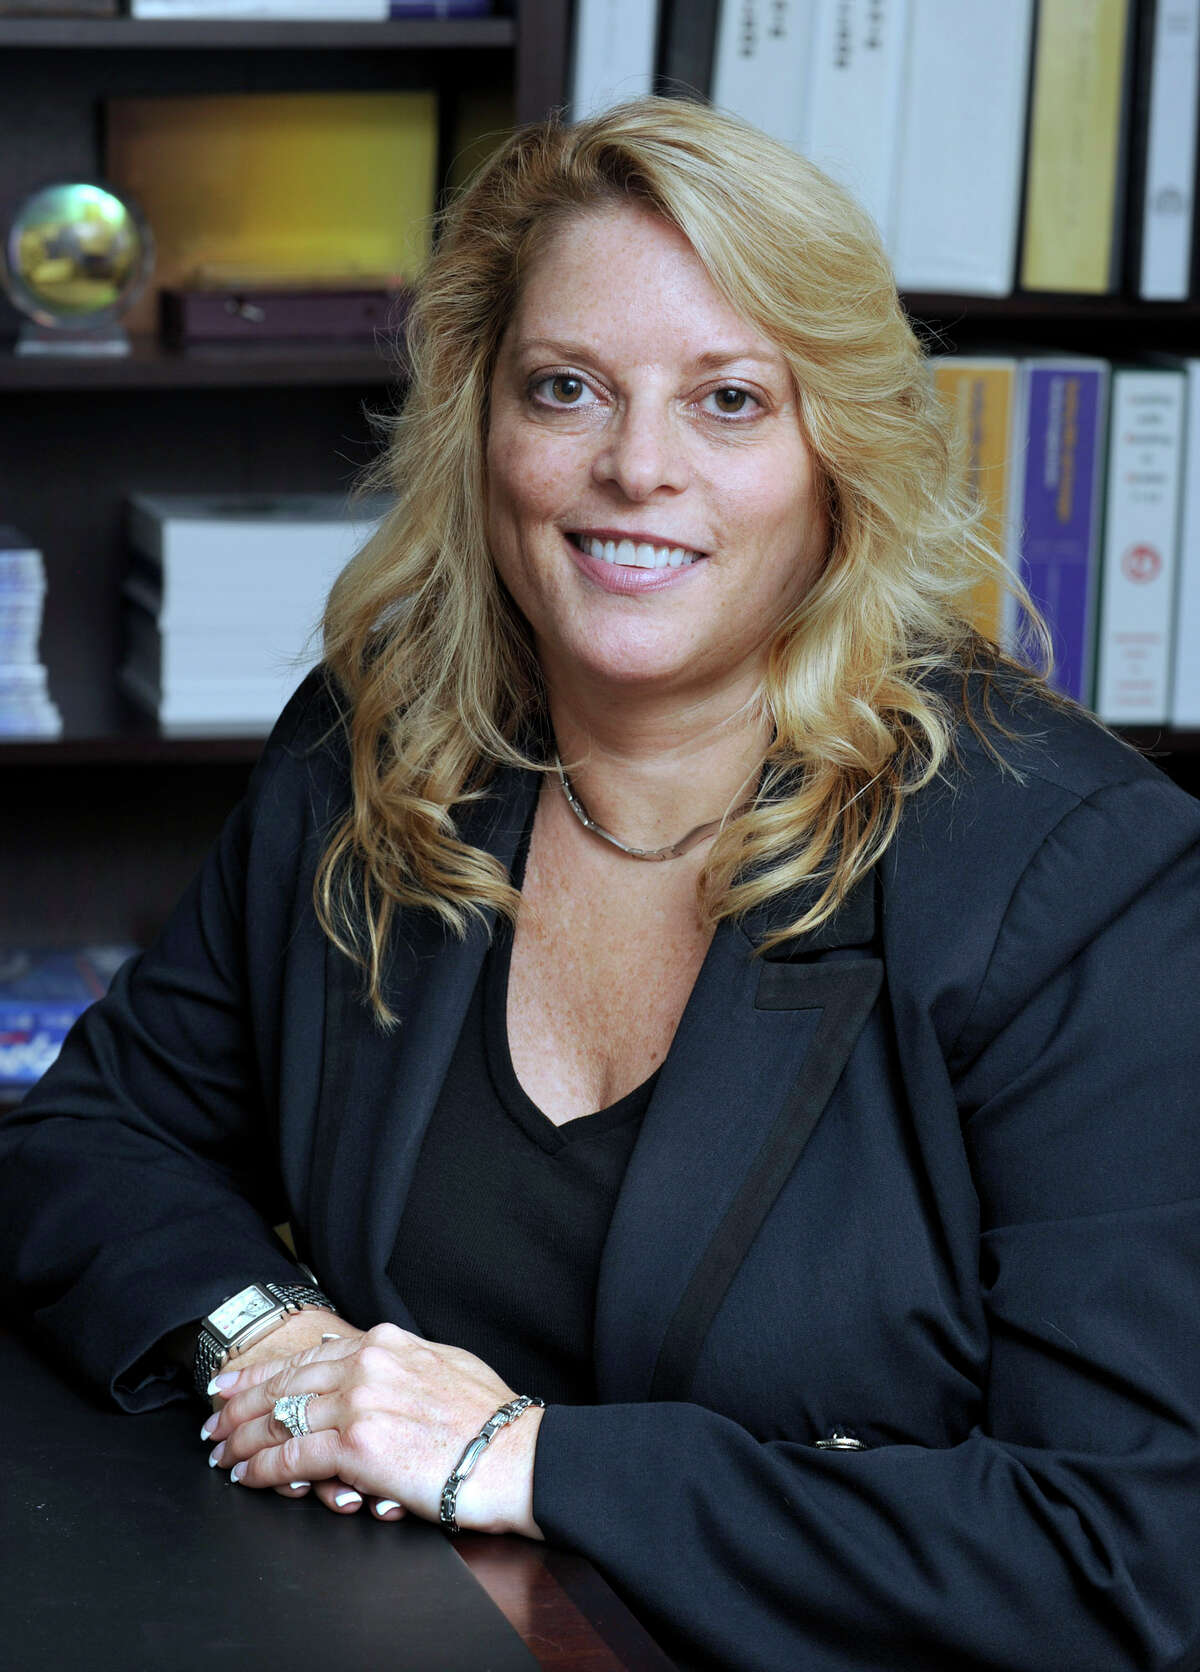 Stacey Gross is the new principal of Ridgefield High School. She is photographed at the school Wednesday, Aug. 29, 2012.